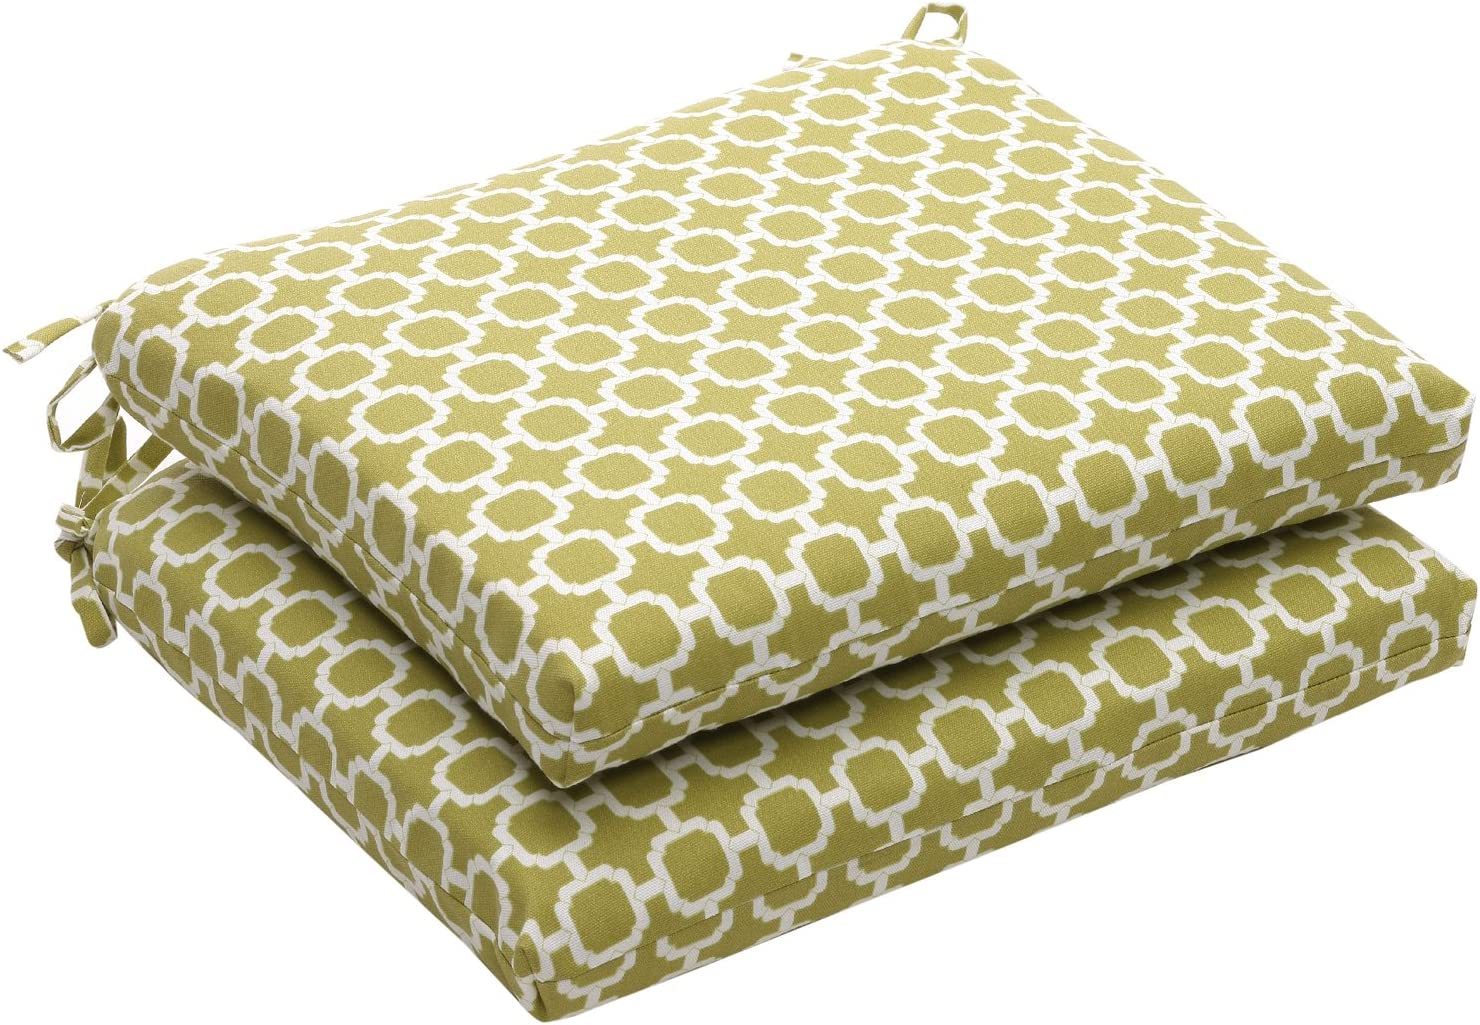 Pillow Perfect Indoor Outdoor Geometric Square Seat Cushion, 18.5 in. L X 16 in. W X 3 in. D, Green White